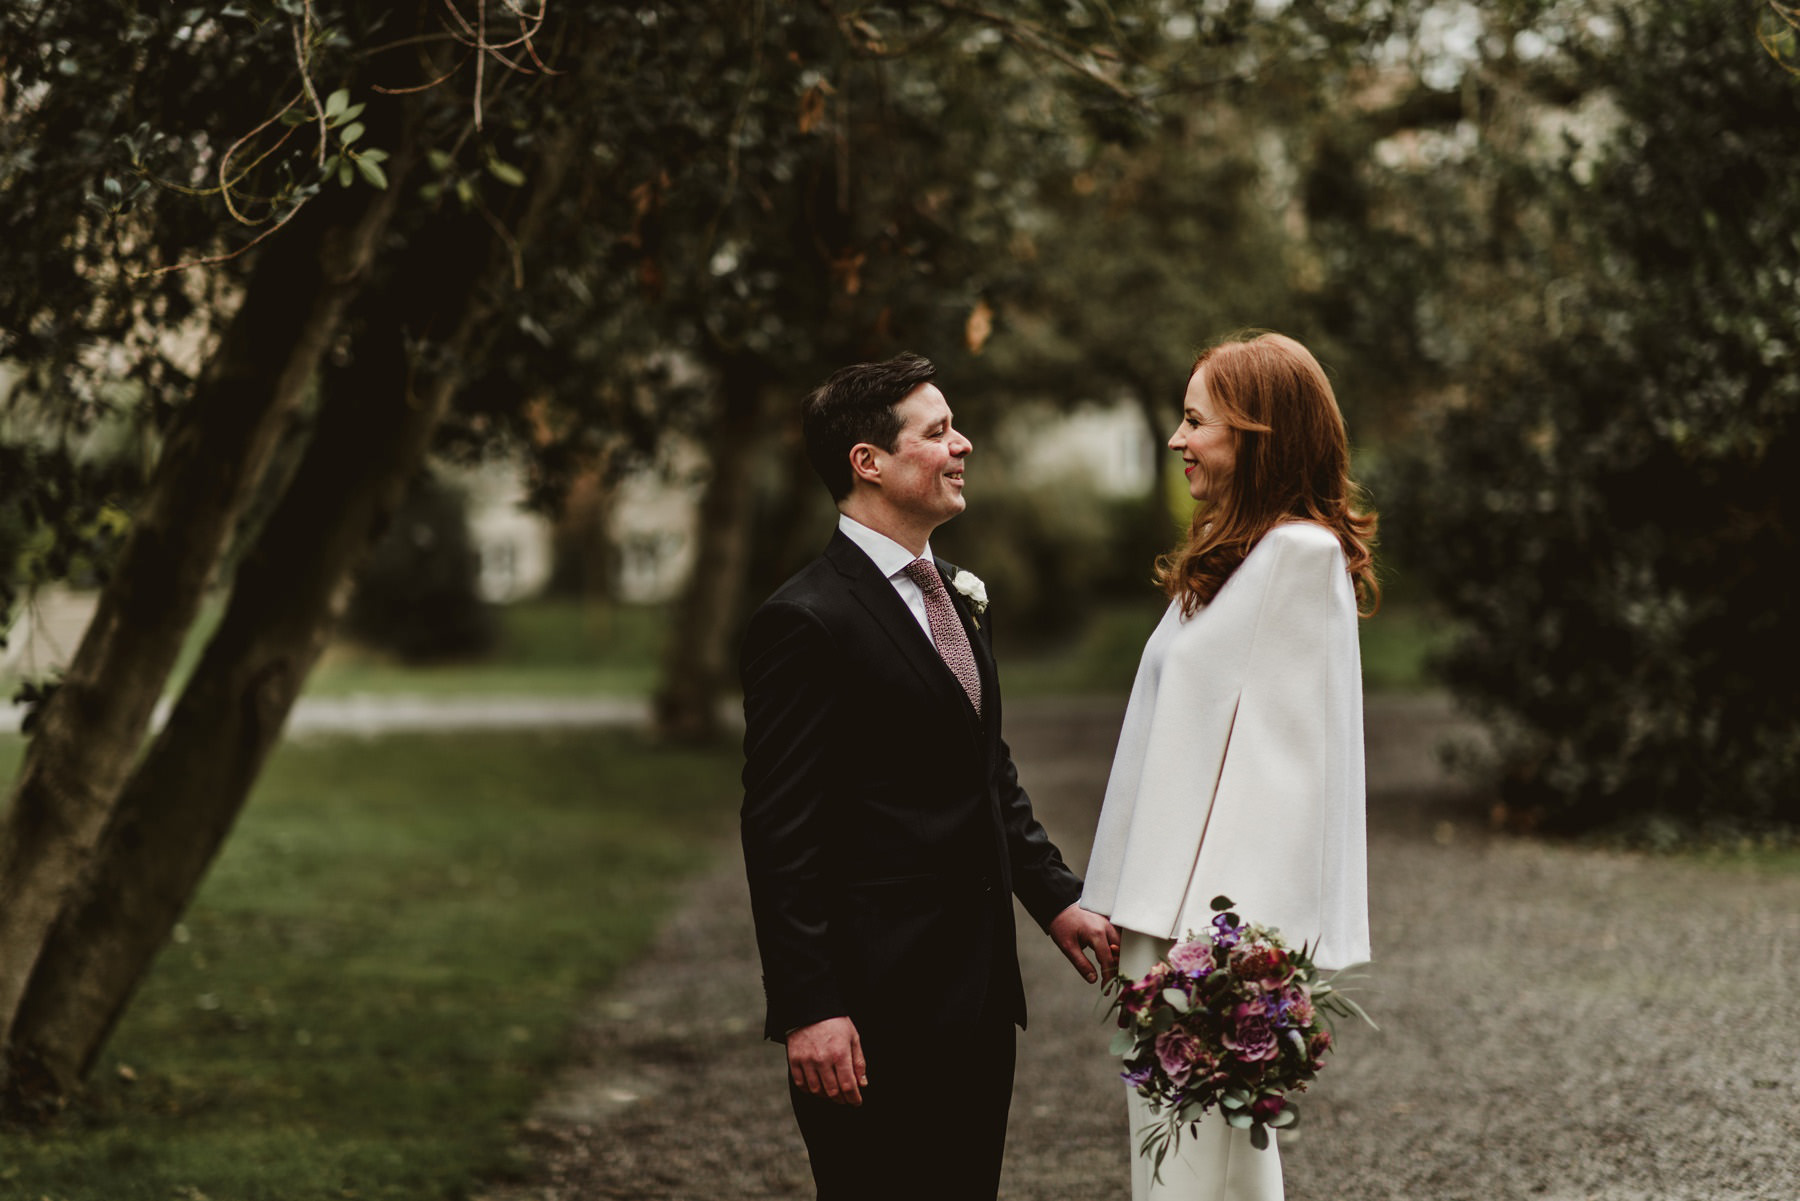 urban wedding couple,wedding in dublin